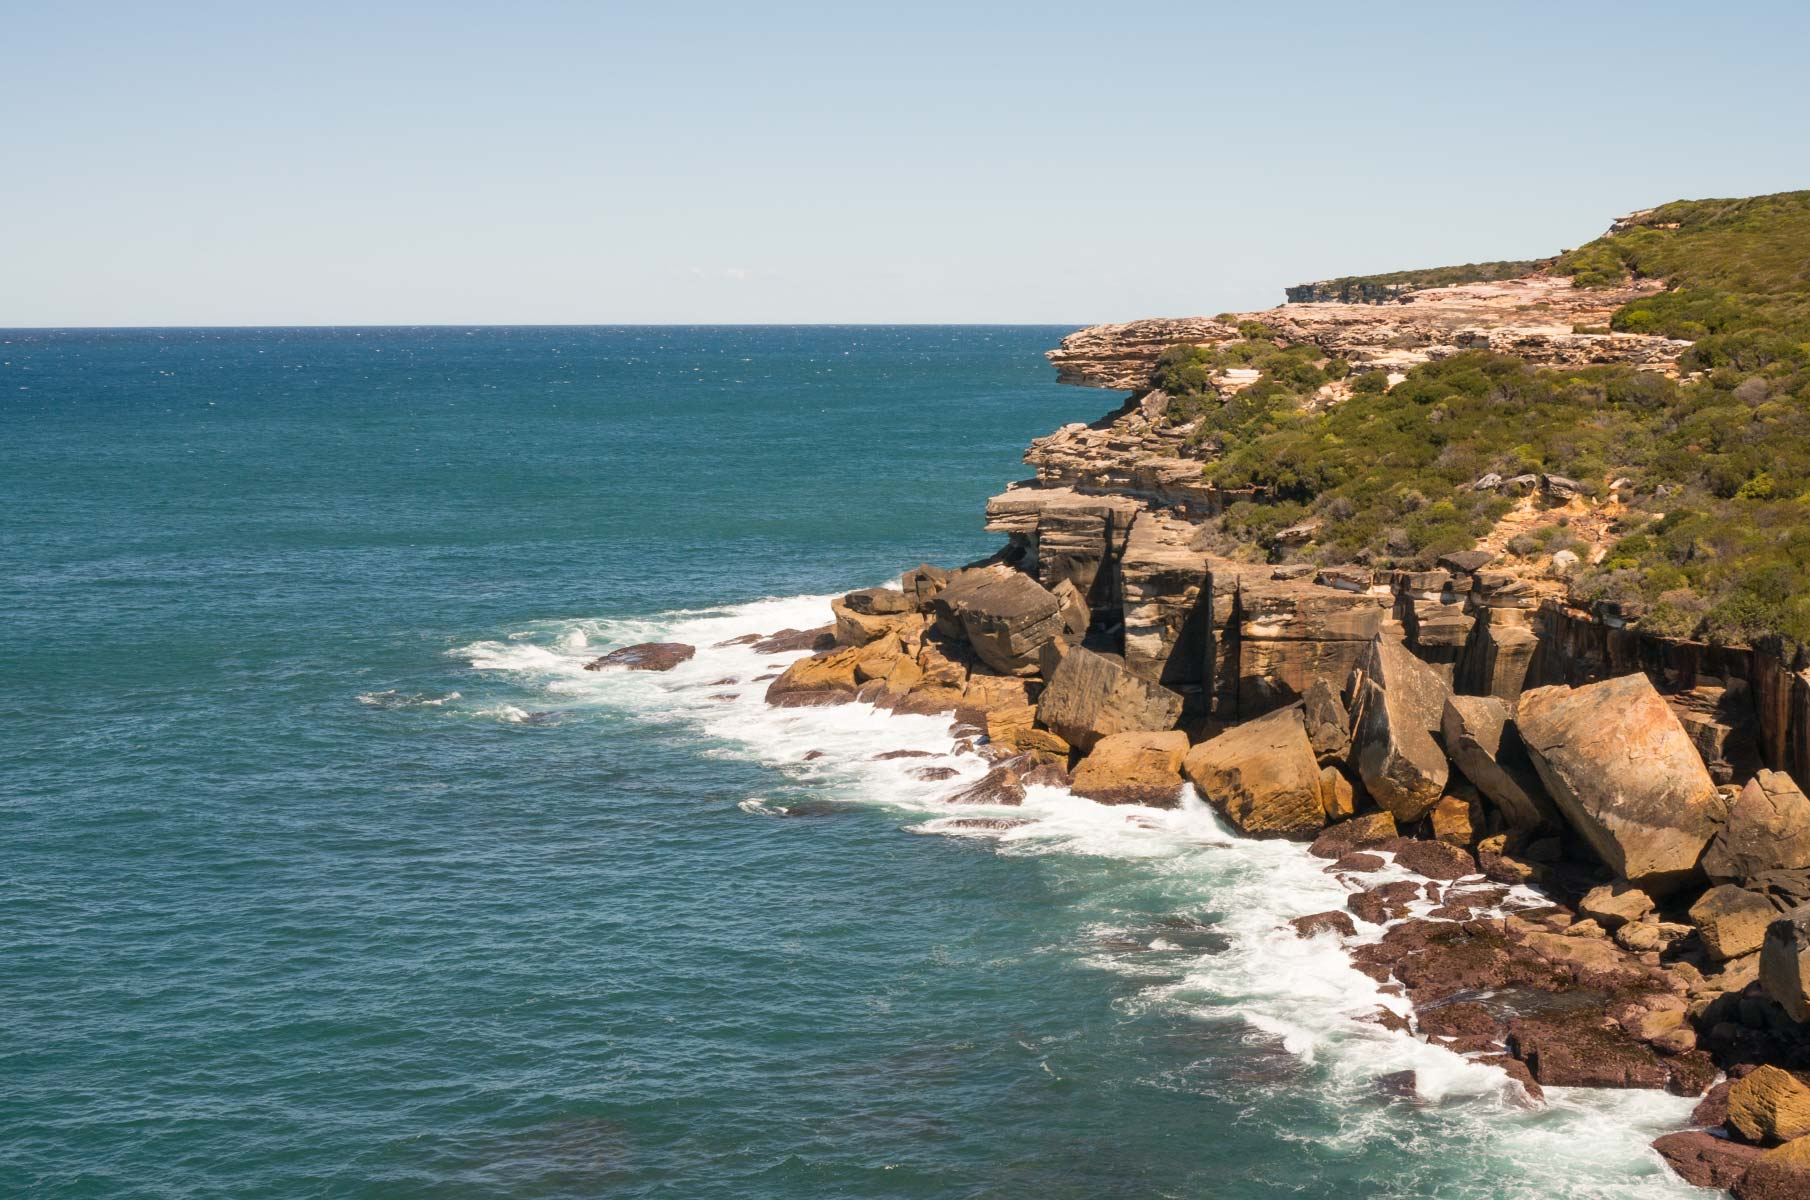 Royal National Park, Australien